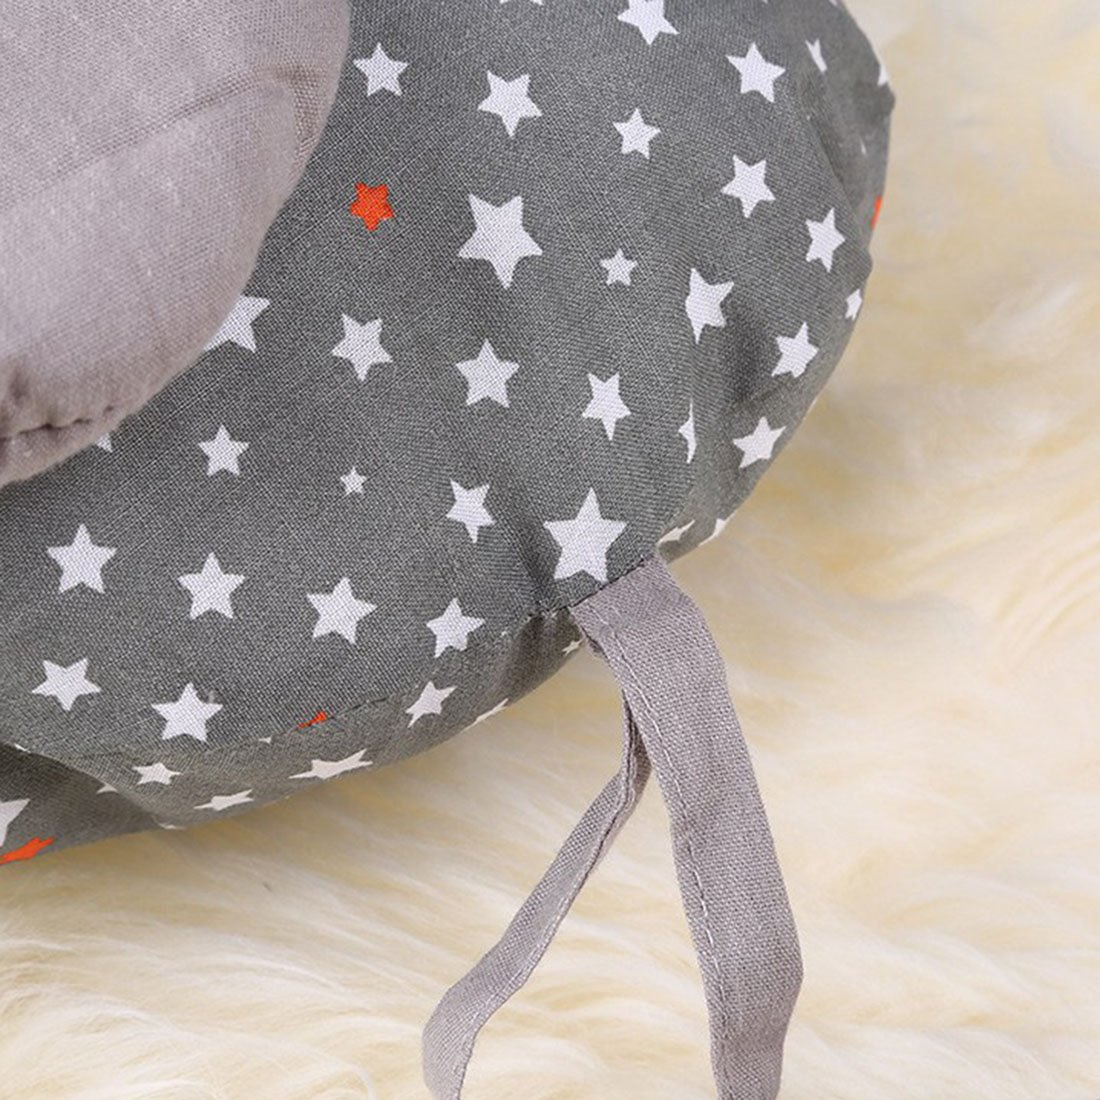 Freahap Cot Bumpers 6Pcs Cute Elephant Bumpers for Crib Baby Head Protect #1